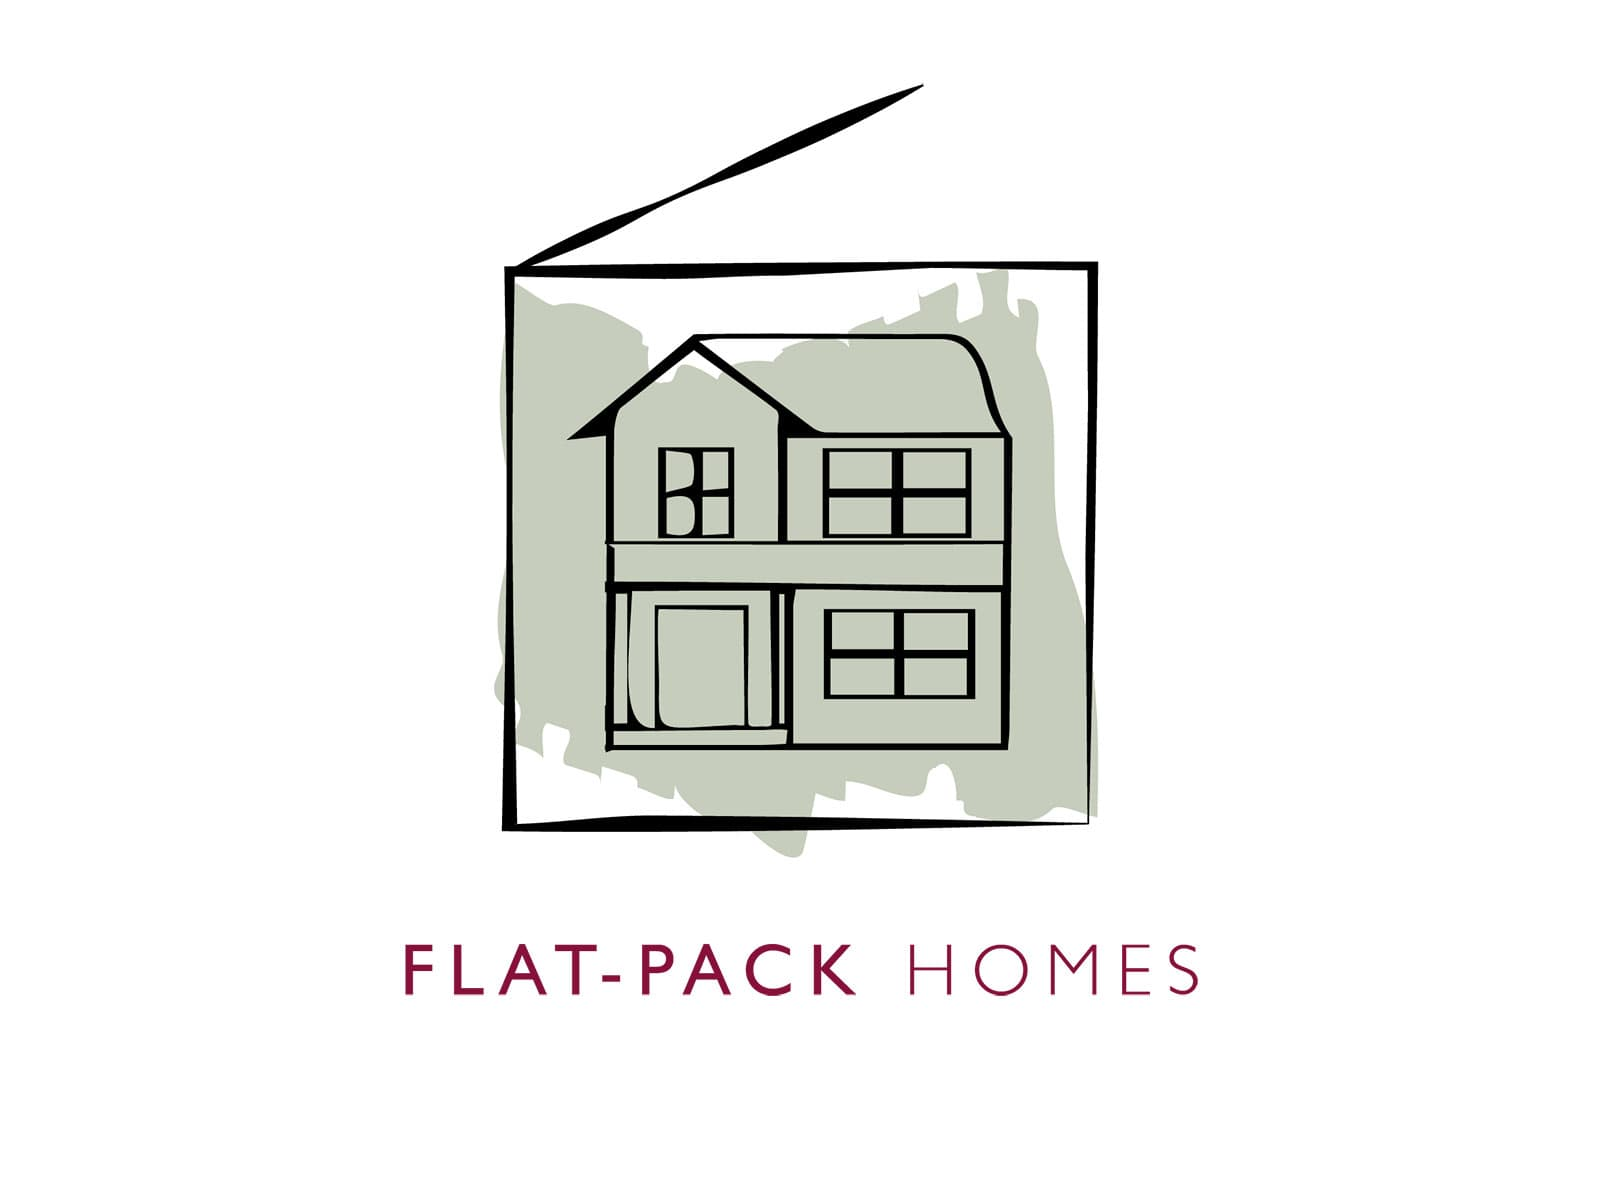 flat pack homes